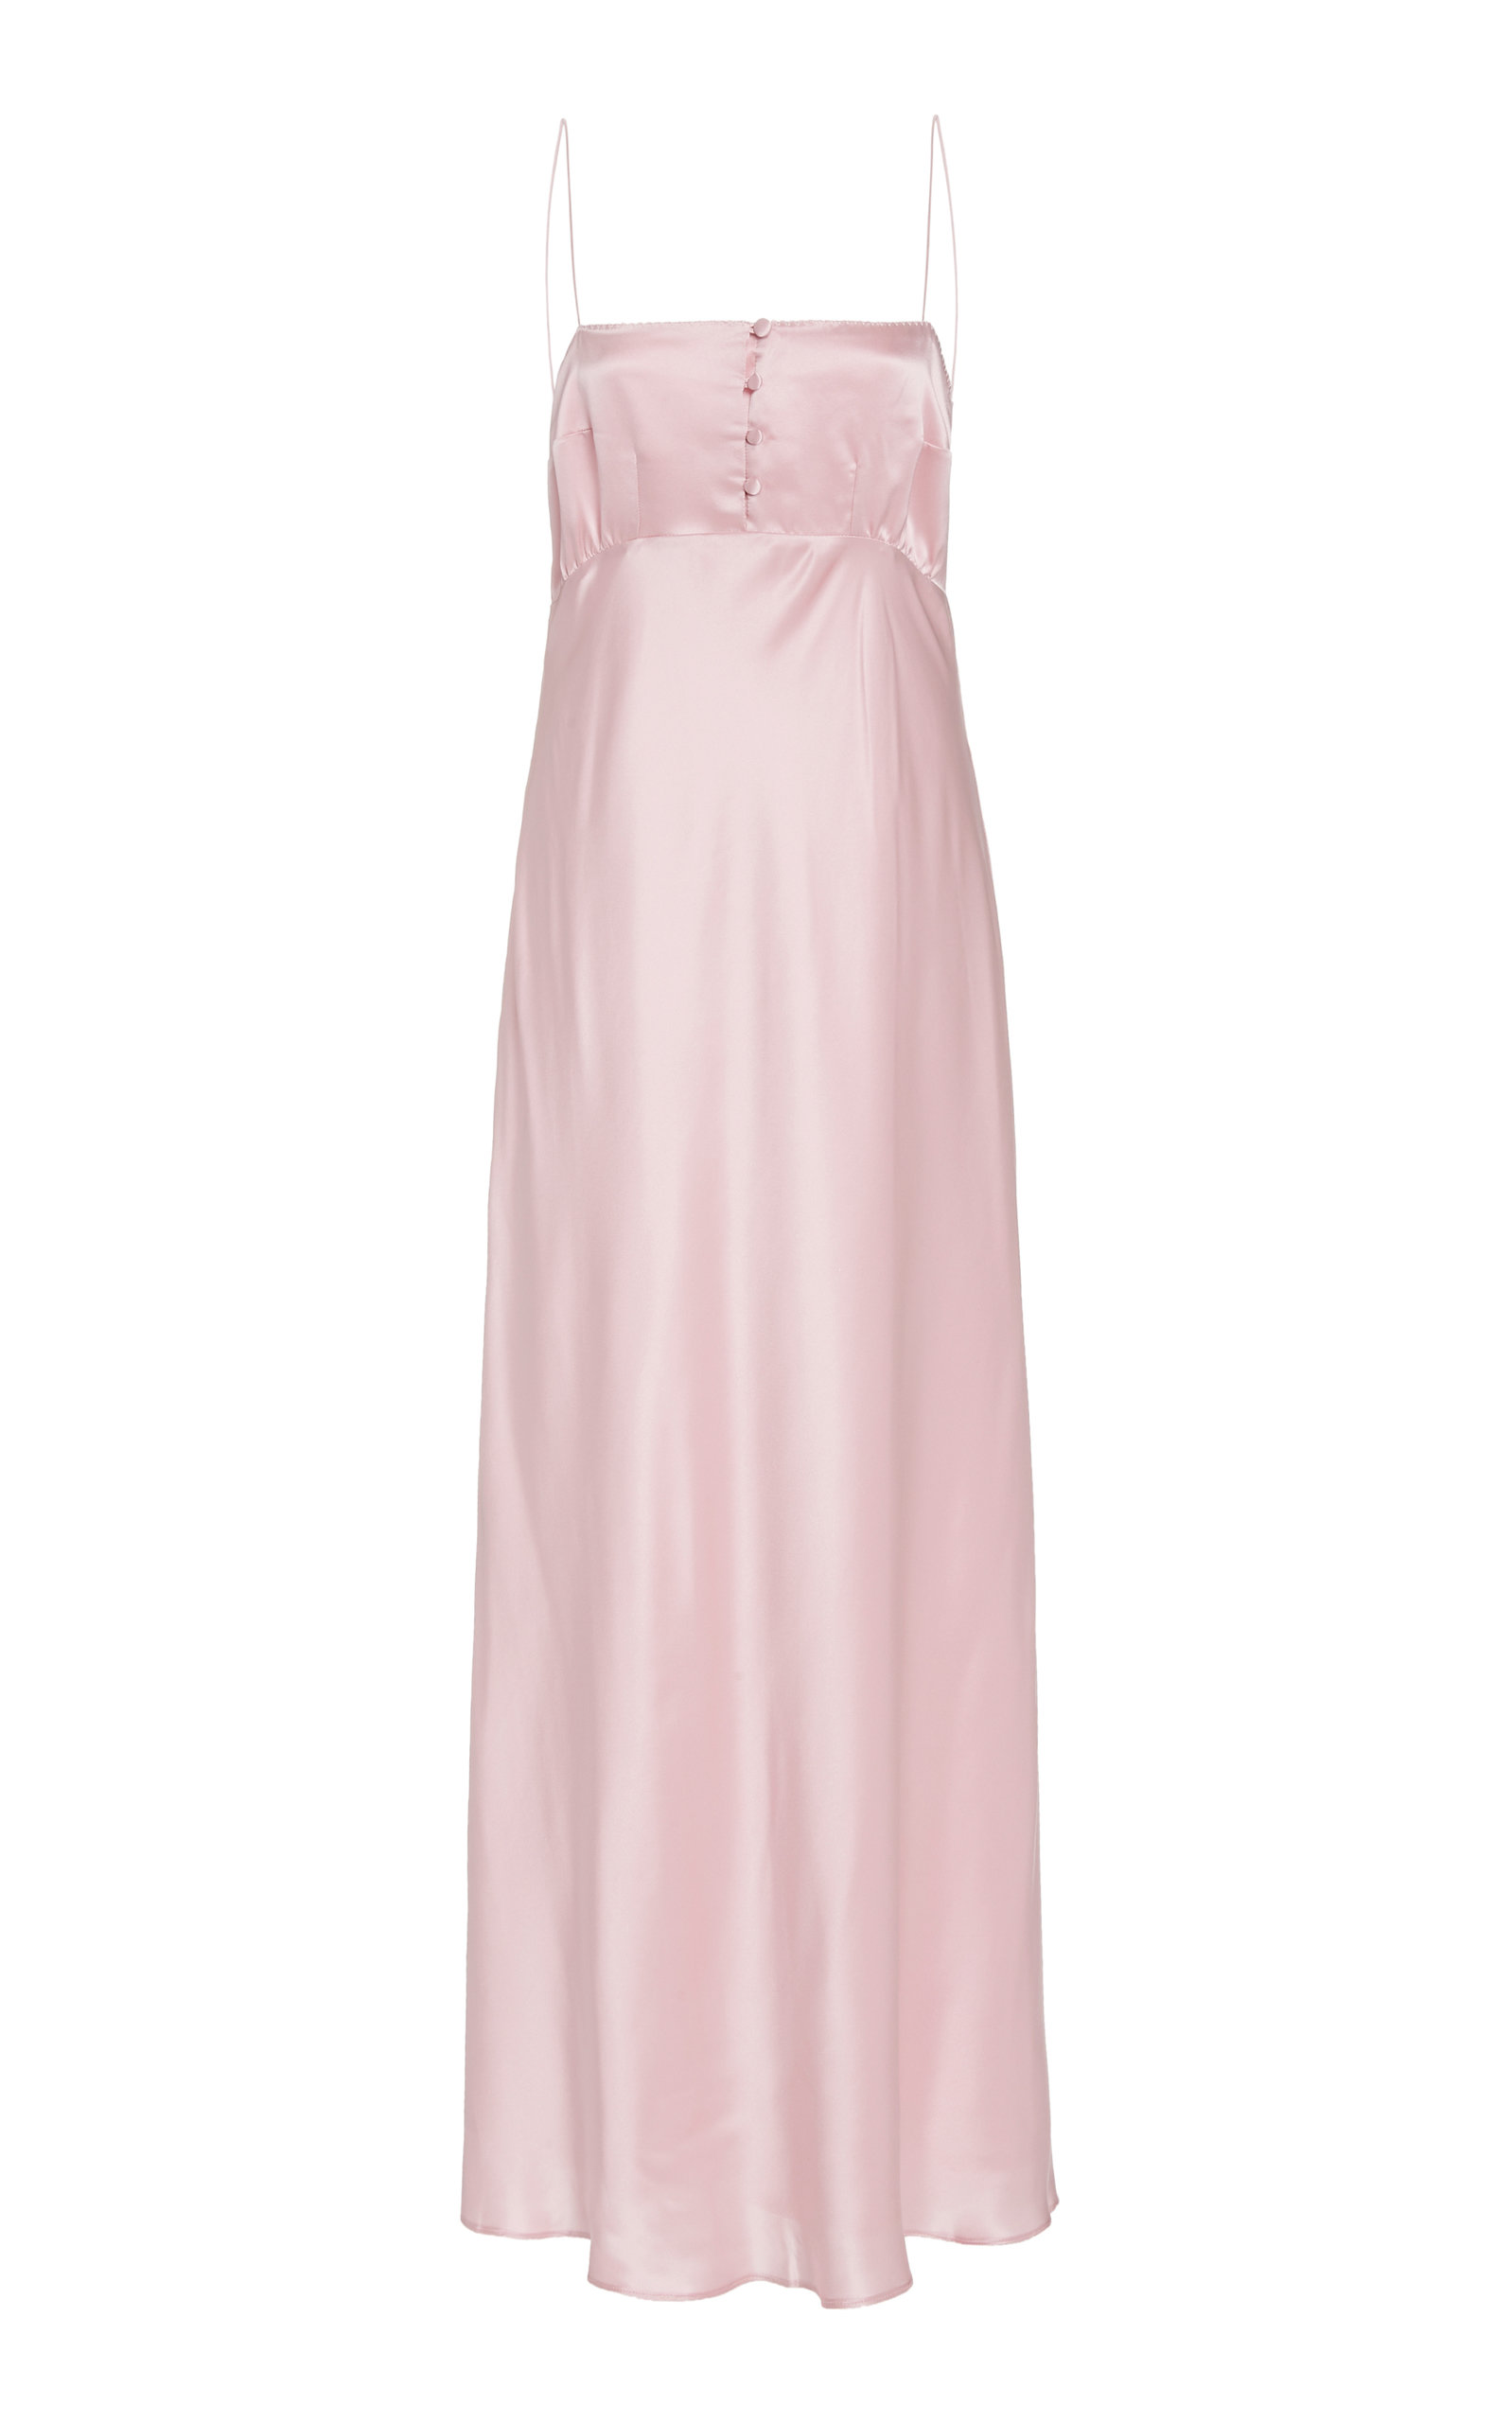 Buy Bernadette Antwerp Florence Satin Silk Slip Dress online, shop Bernadette Antwerp at the best price